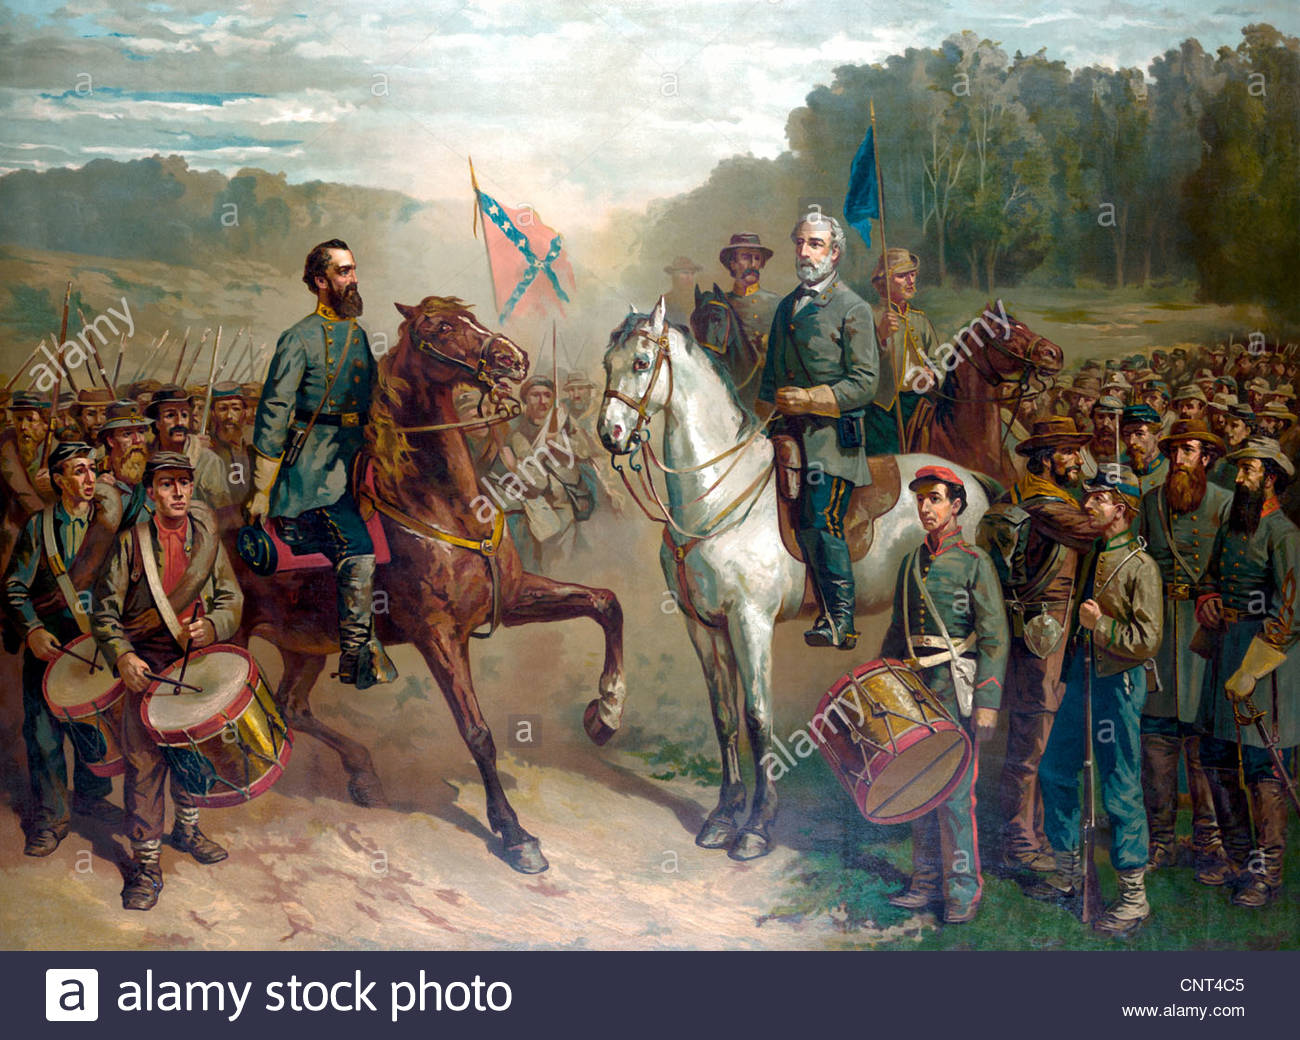 robert e lee and thomas stonewall jackson the great southern generals The dallas isd board of trustees is considering renaming four schools named after confederate generals: (from left) robert e lee, thomas stonewall jackson, albert sidney johnston and william l cabell.